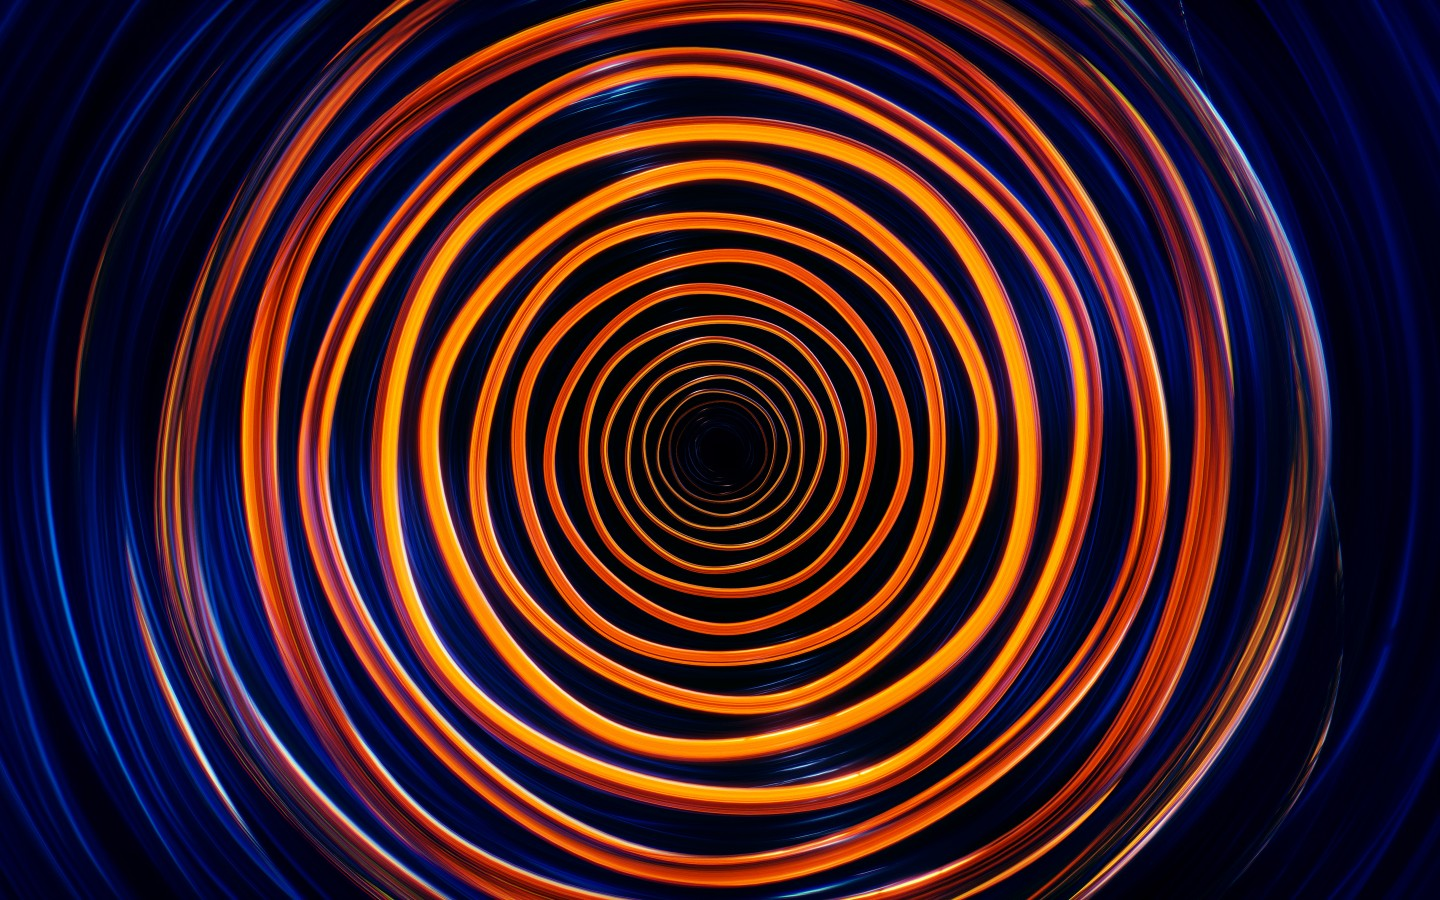 Iphone D Spiral Waves 4k Wallpapers Hd Wallpapers Id 22574